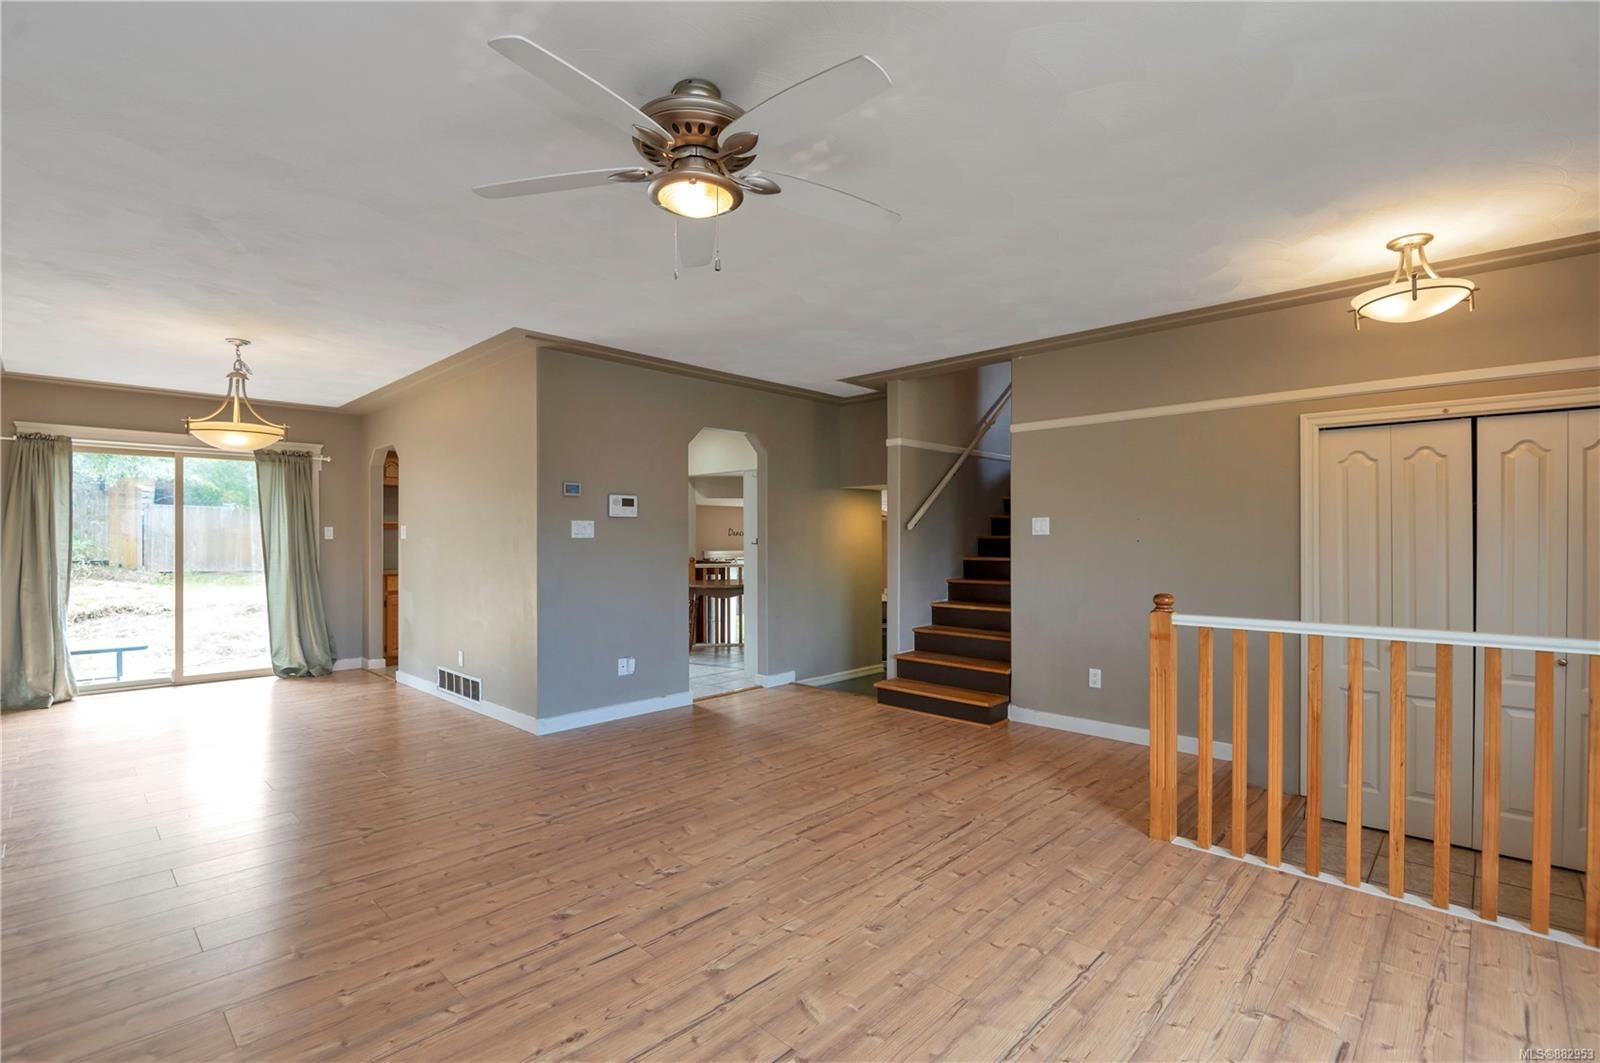 Photo 12: Photos: 732 Oribi Dr in : CR Campbell River Central House for sale (Campbell River)  : MLS®# 882953